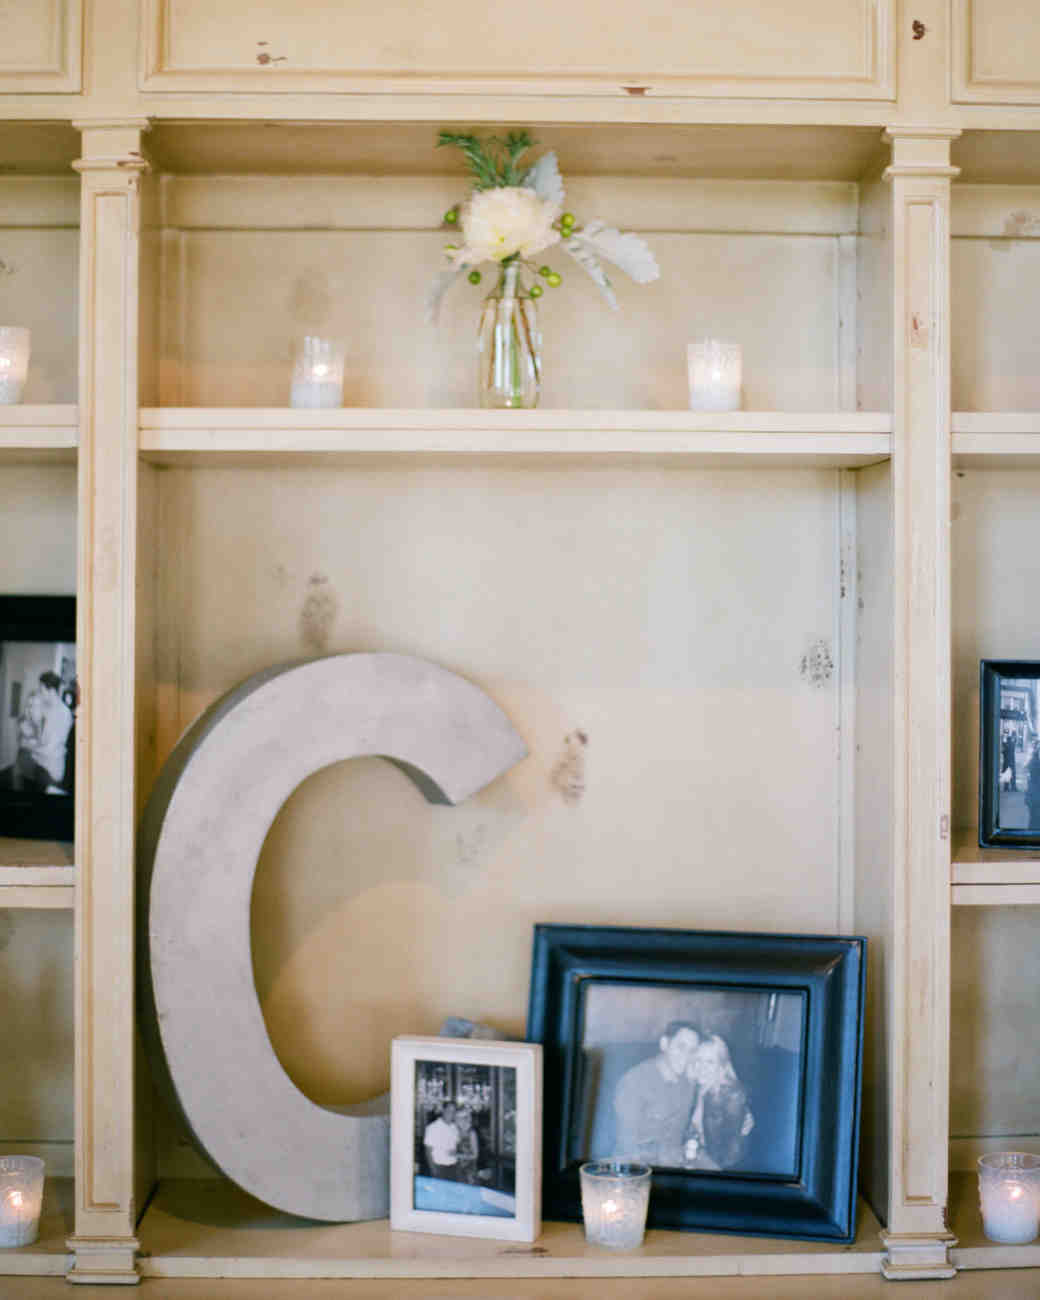 6 Ideas On How To Display Your Home Accessories: 30 Creative Ways To Display Photos At Your Wedding